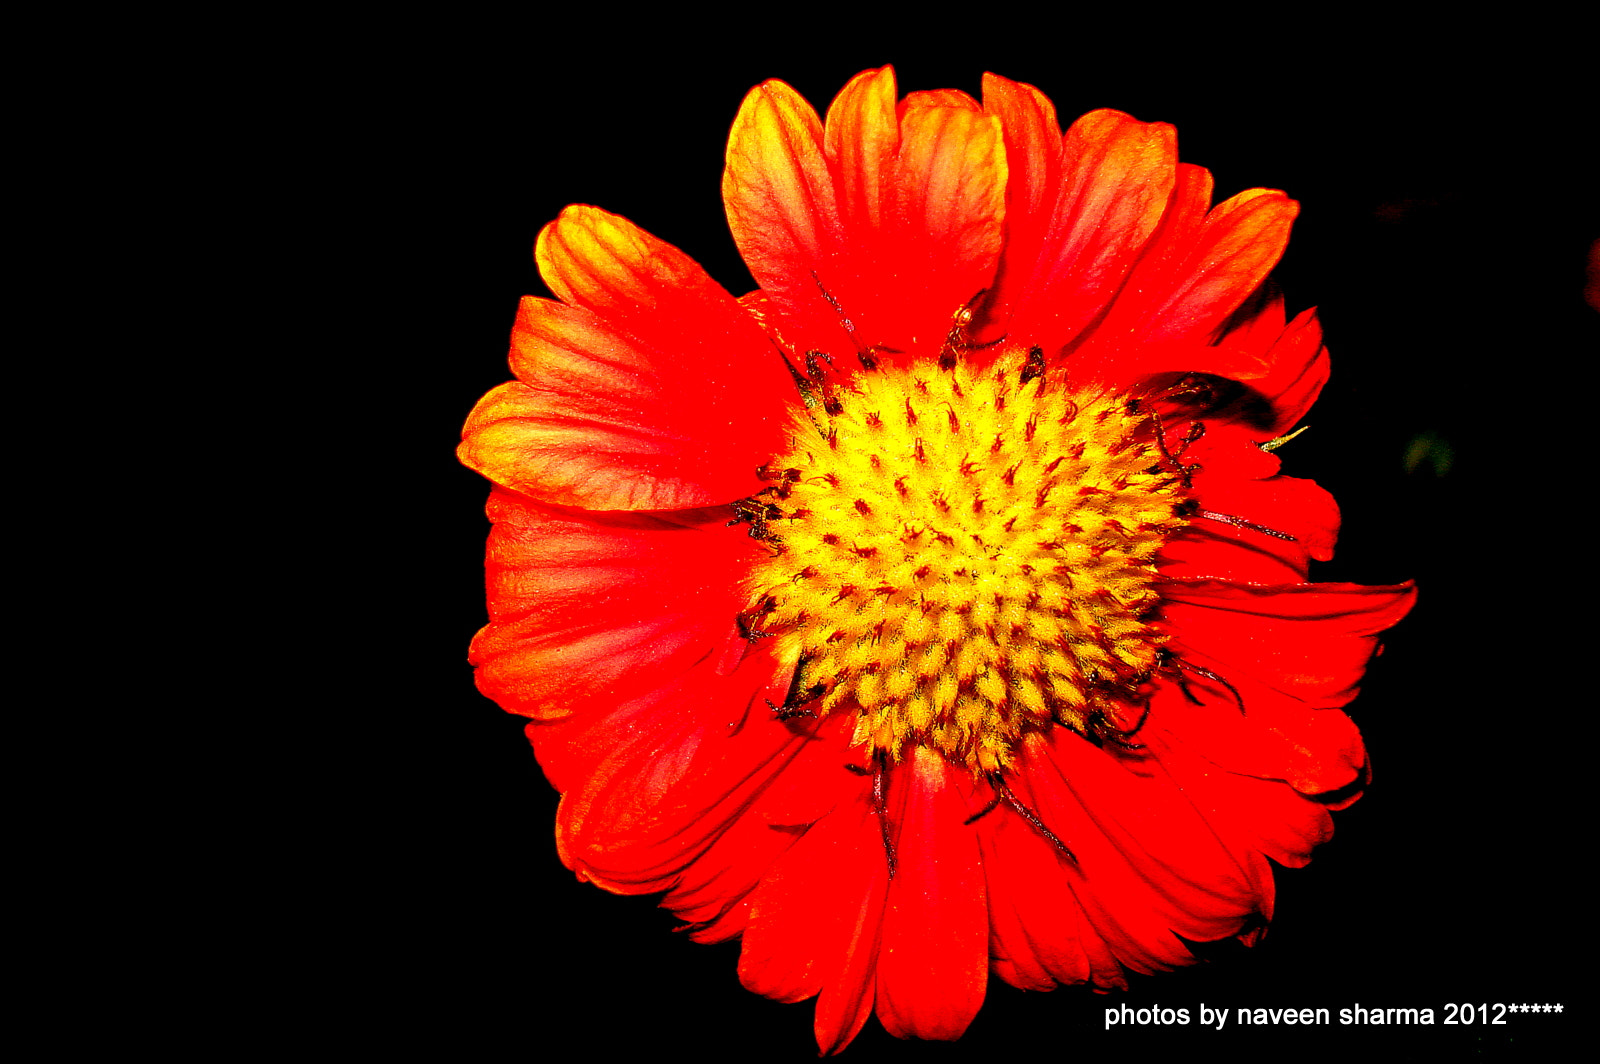 Photograph Wish u best of weekend by naveen sharma on 500px